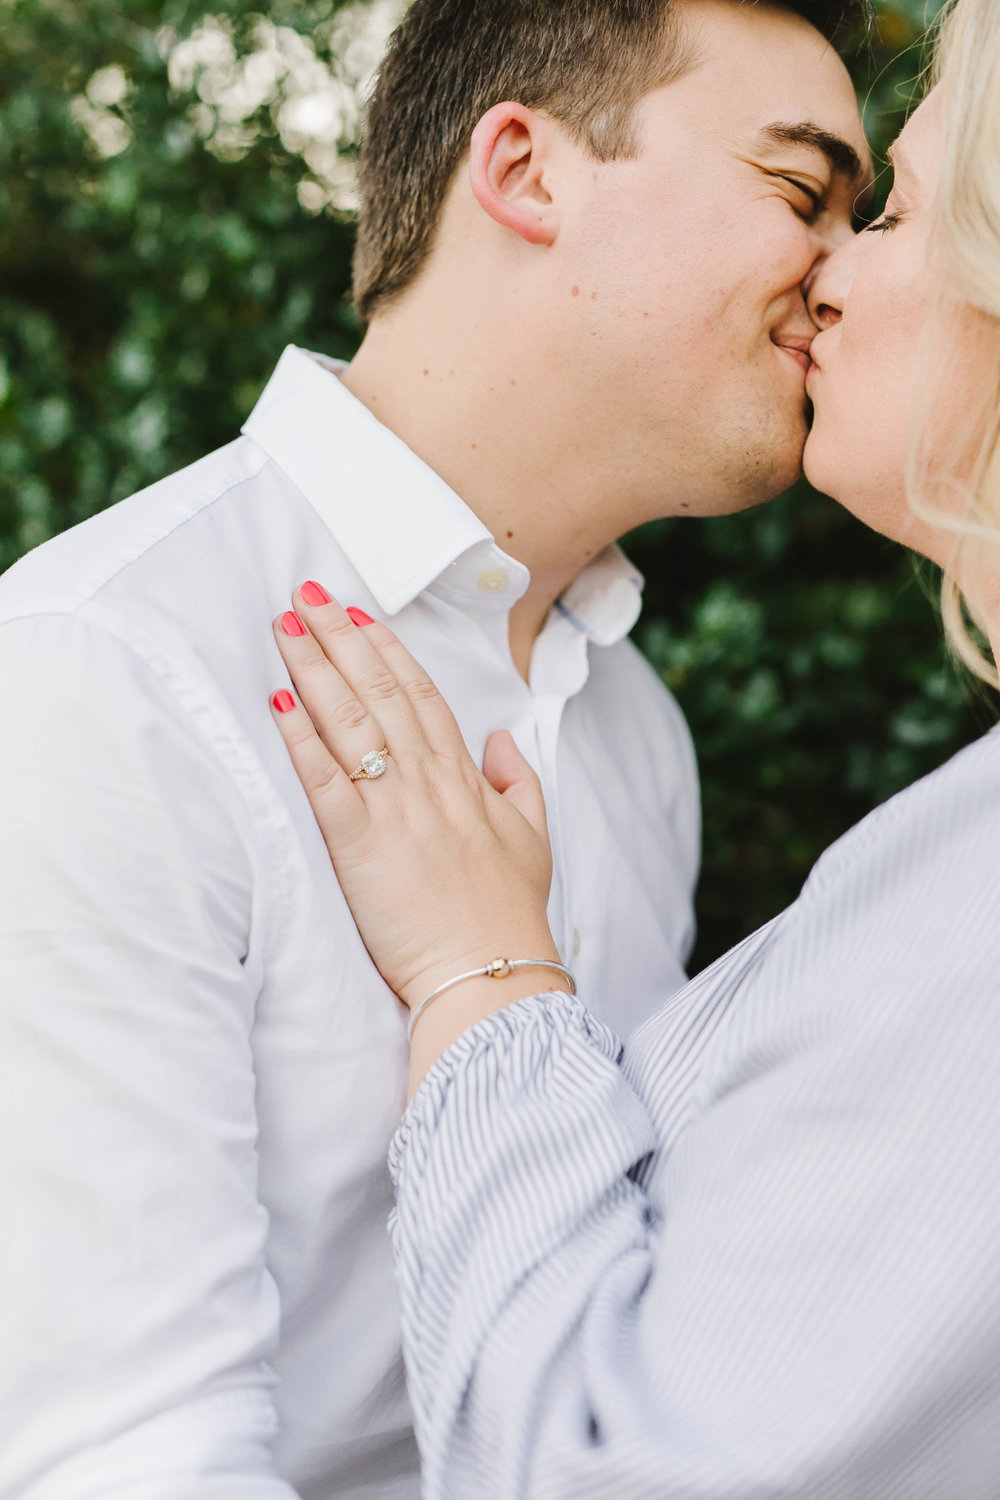 Beverly Lynch Park Rose Garden Engagement Session - Emily Tebbetts Photography-76.jpg